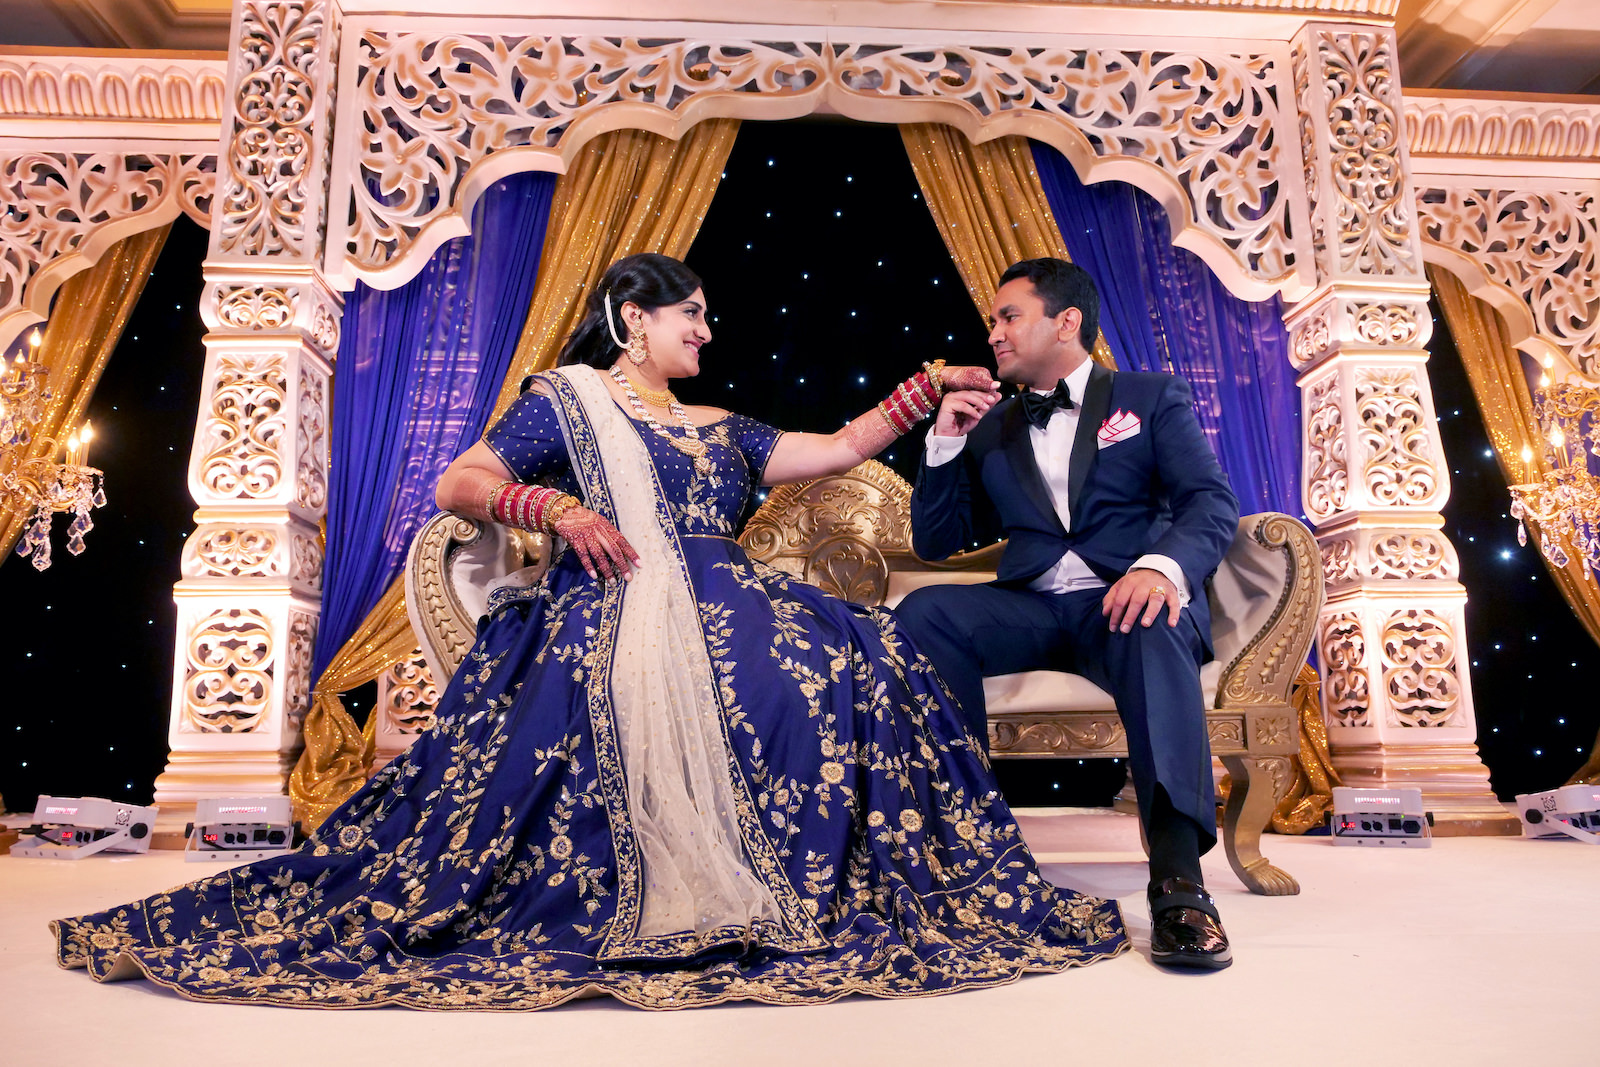 Indian Bride and Groom Wedding Portrait | White Gold and Blue Indian Wedding Mandap Stage with Gold Candelabras | Navy Blue and Gold Indian Wedding Dress | Indian Groom in Classic Navy Blue Tuxedo